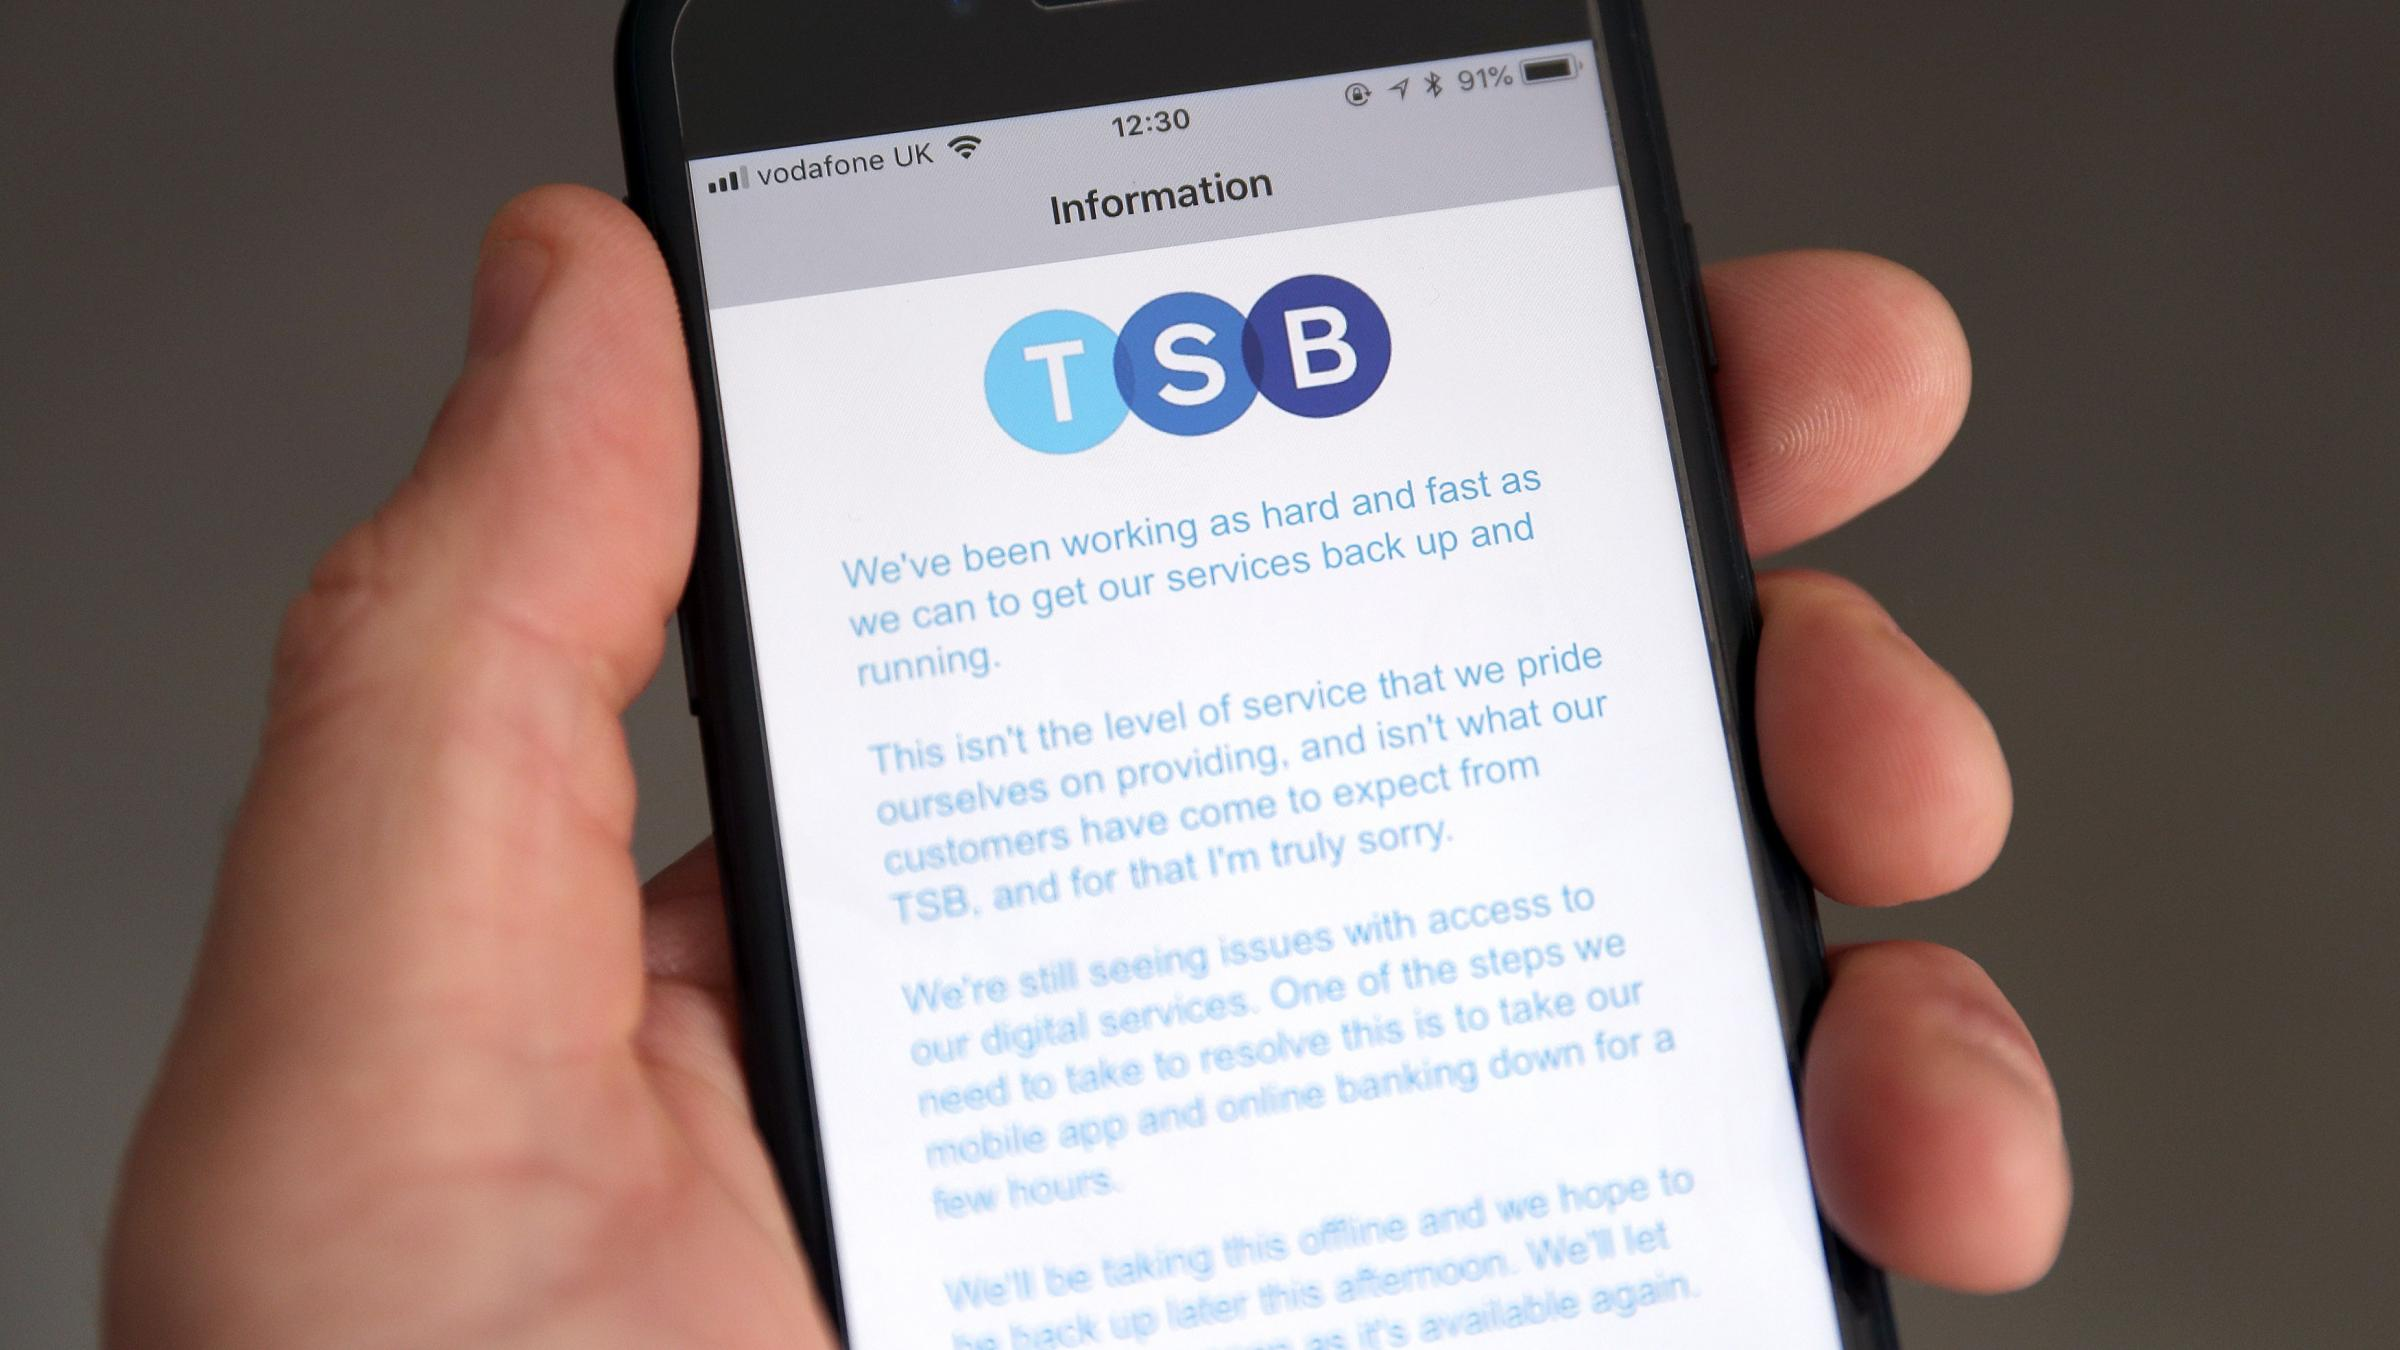 TSB internet banking operating at 50 per cent capacity, says boss